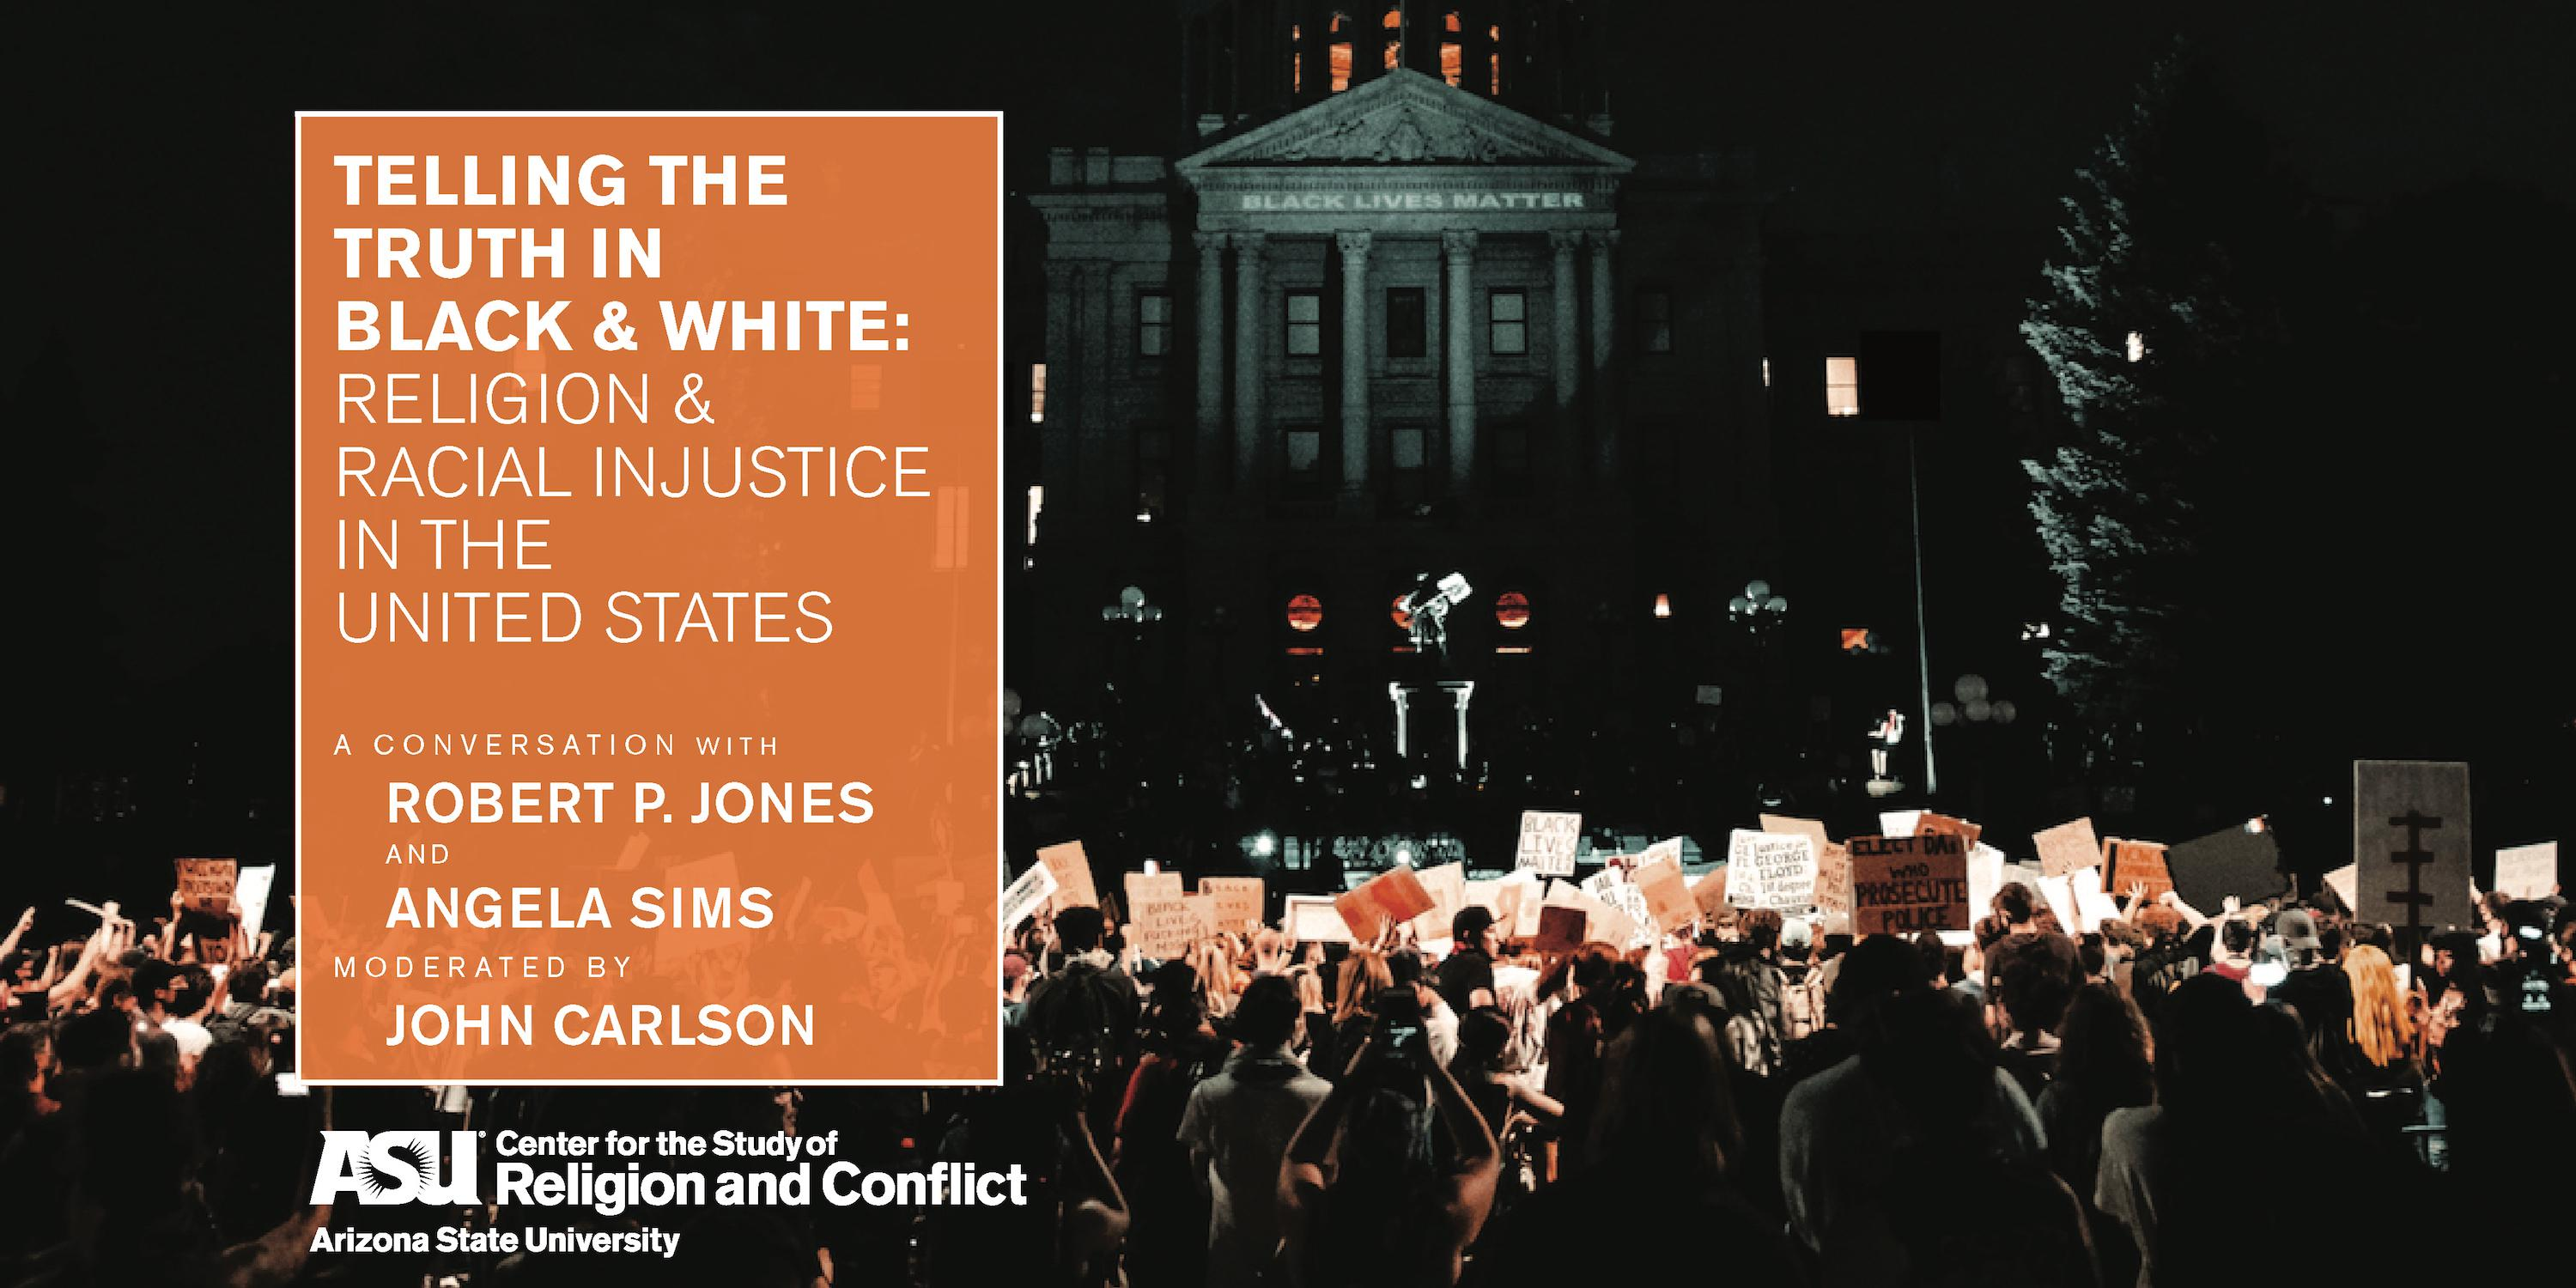 Telling the Truth in Black and White: Religion and Racial Injustice in the United States A conversation with Robert P. Jones & Angela Sims